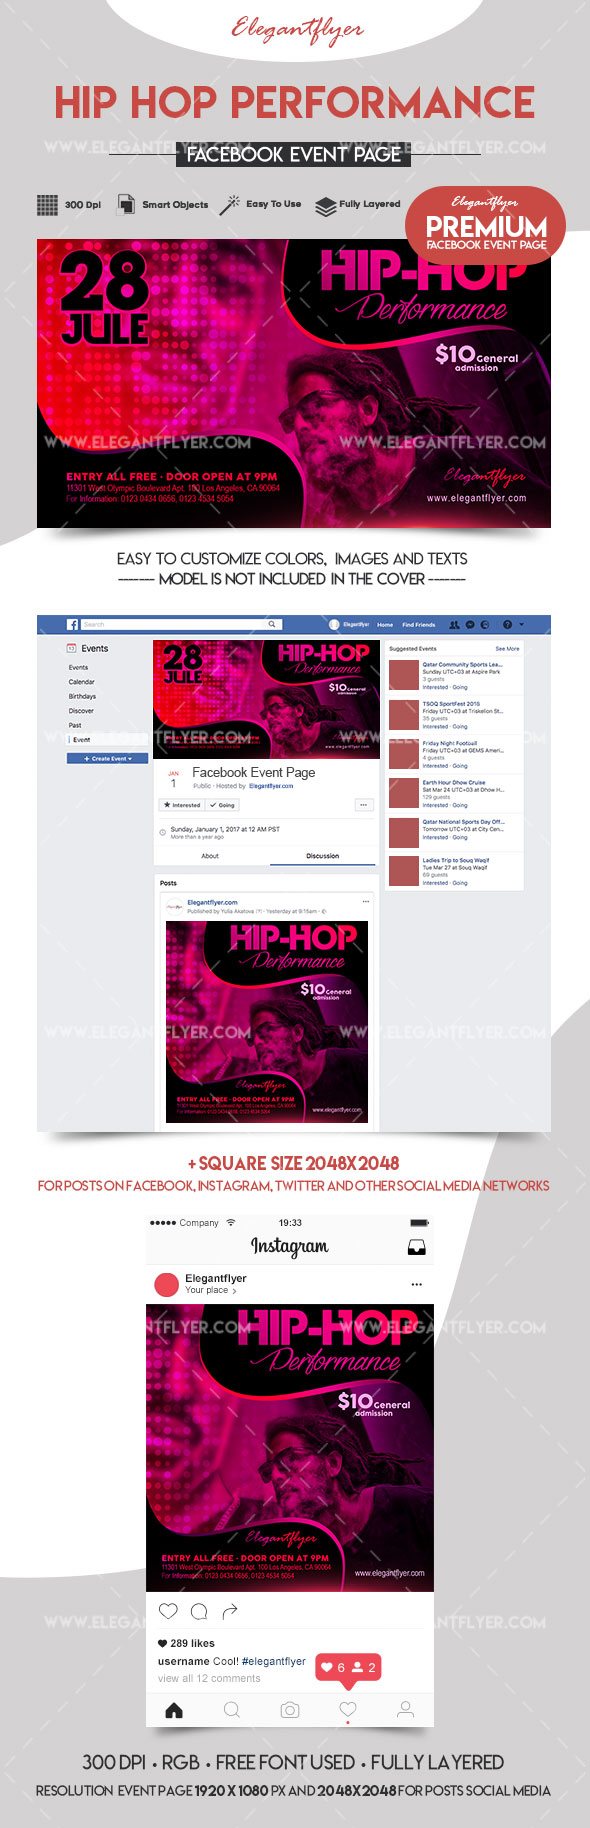 Hip Hop Performance – Premium Facebook Event Page